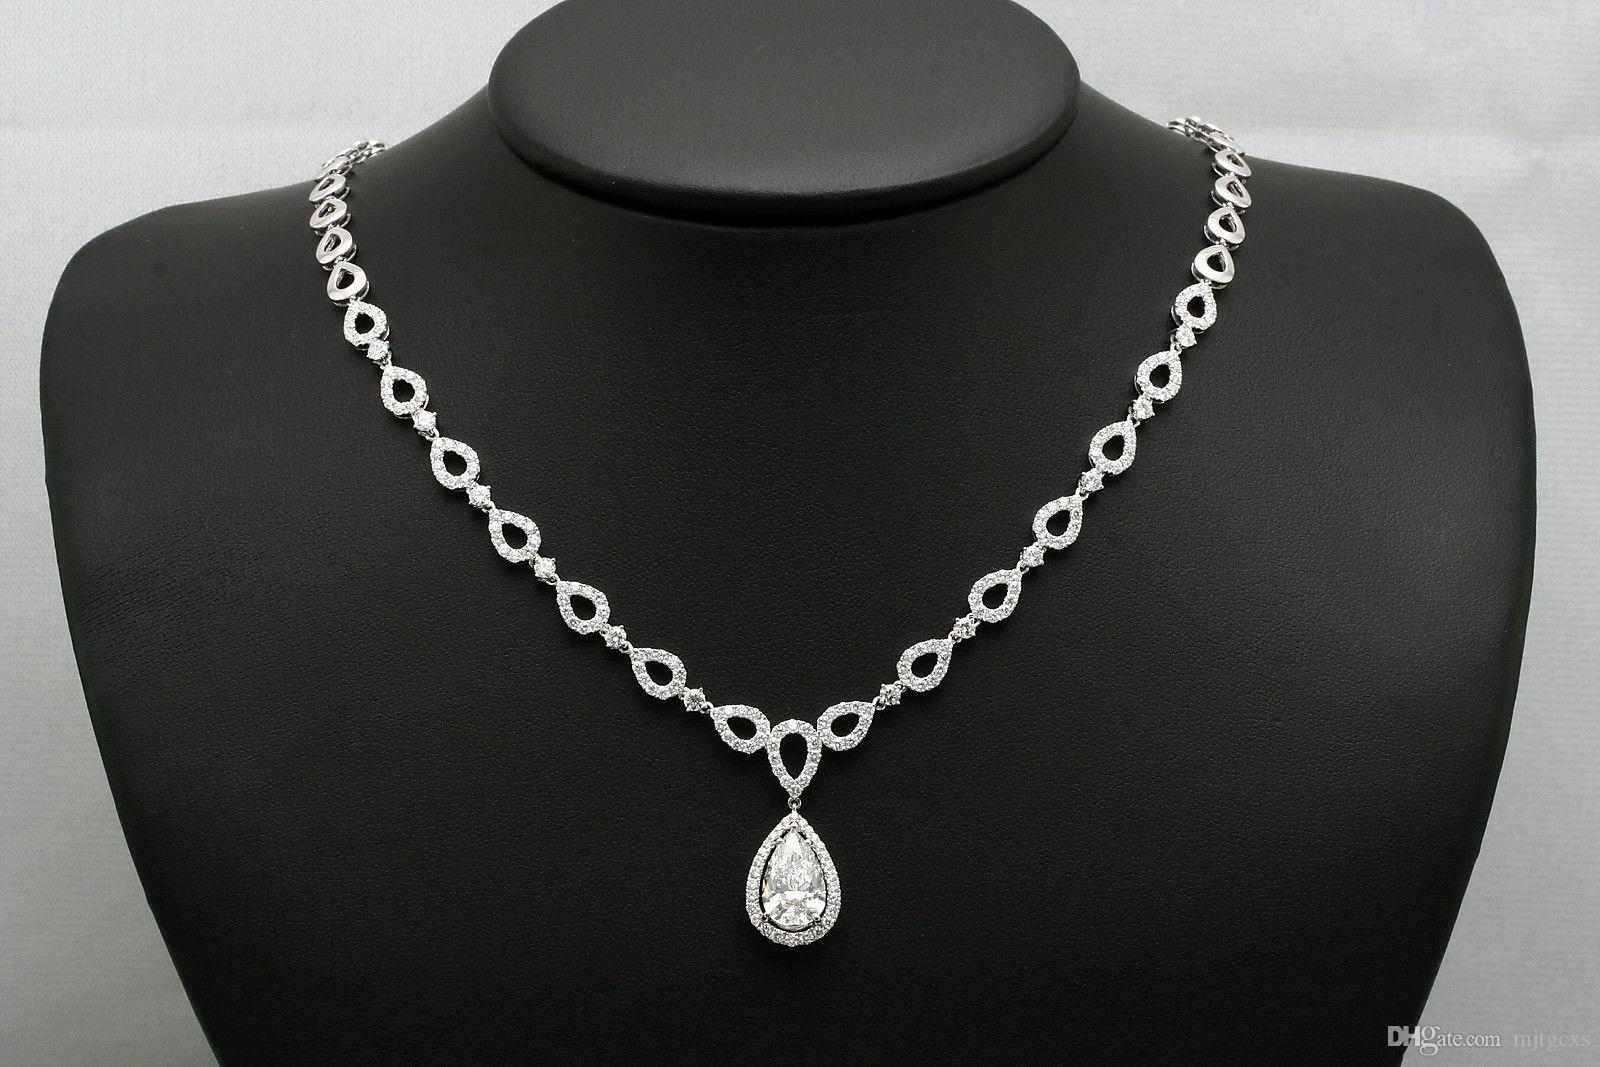 watch broumand pear mark youtube diamond shaped necklace pendant